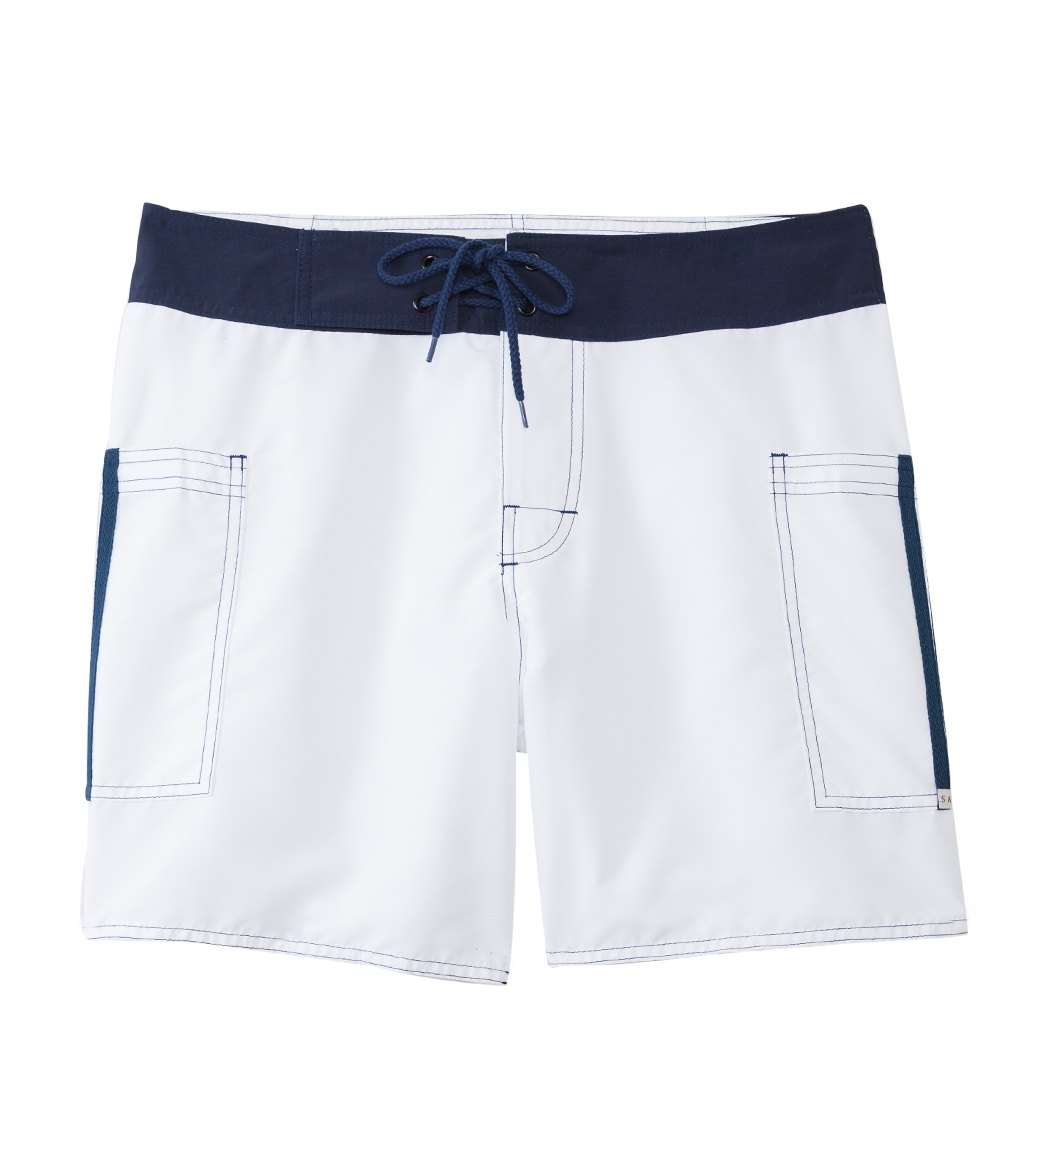 a1bc921a16 Sauvage Classic Contrast Waistband Boardshort at SwimOutlet.com - Free  Shipping